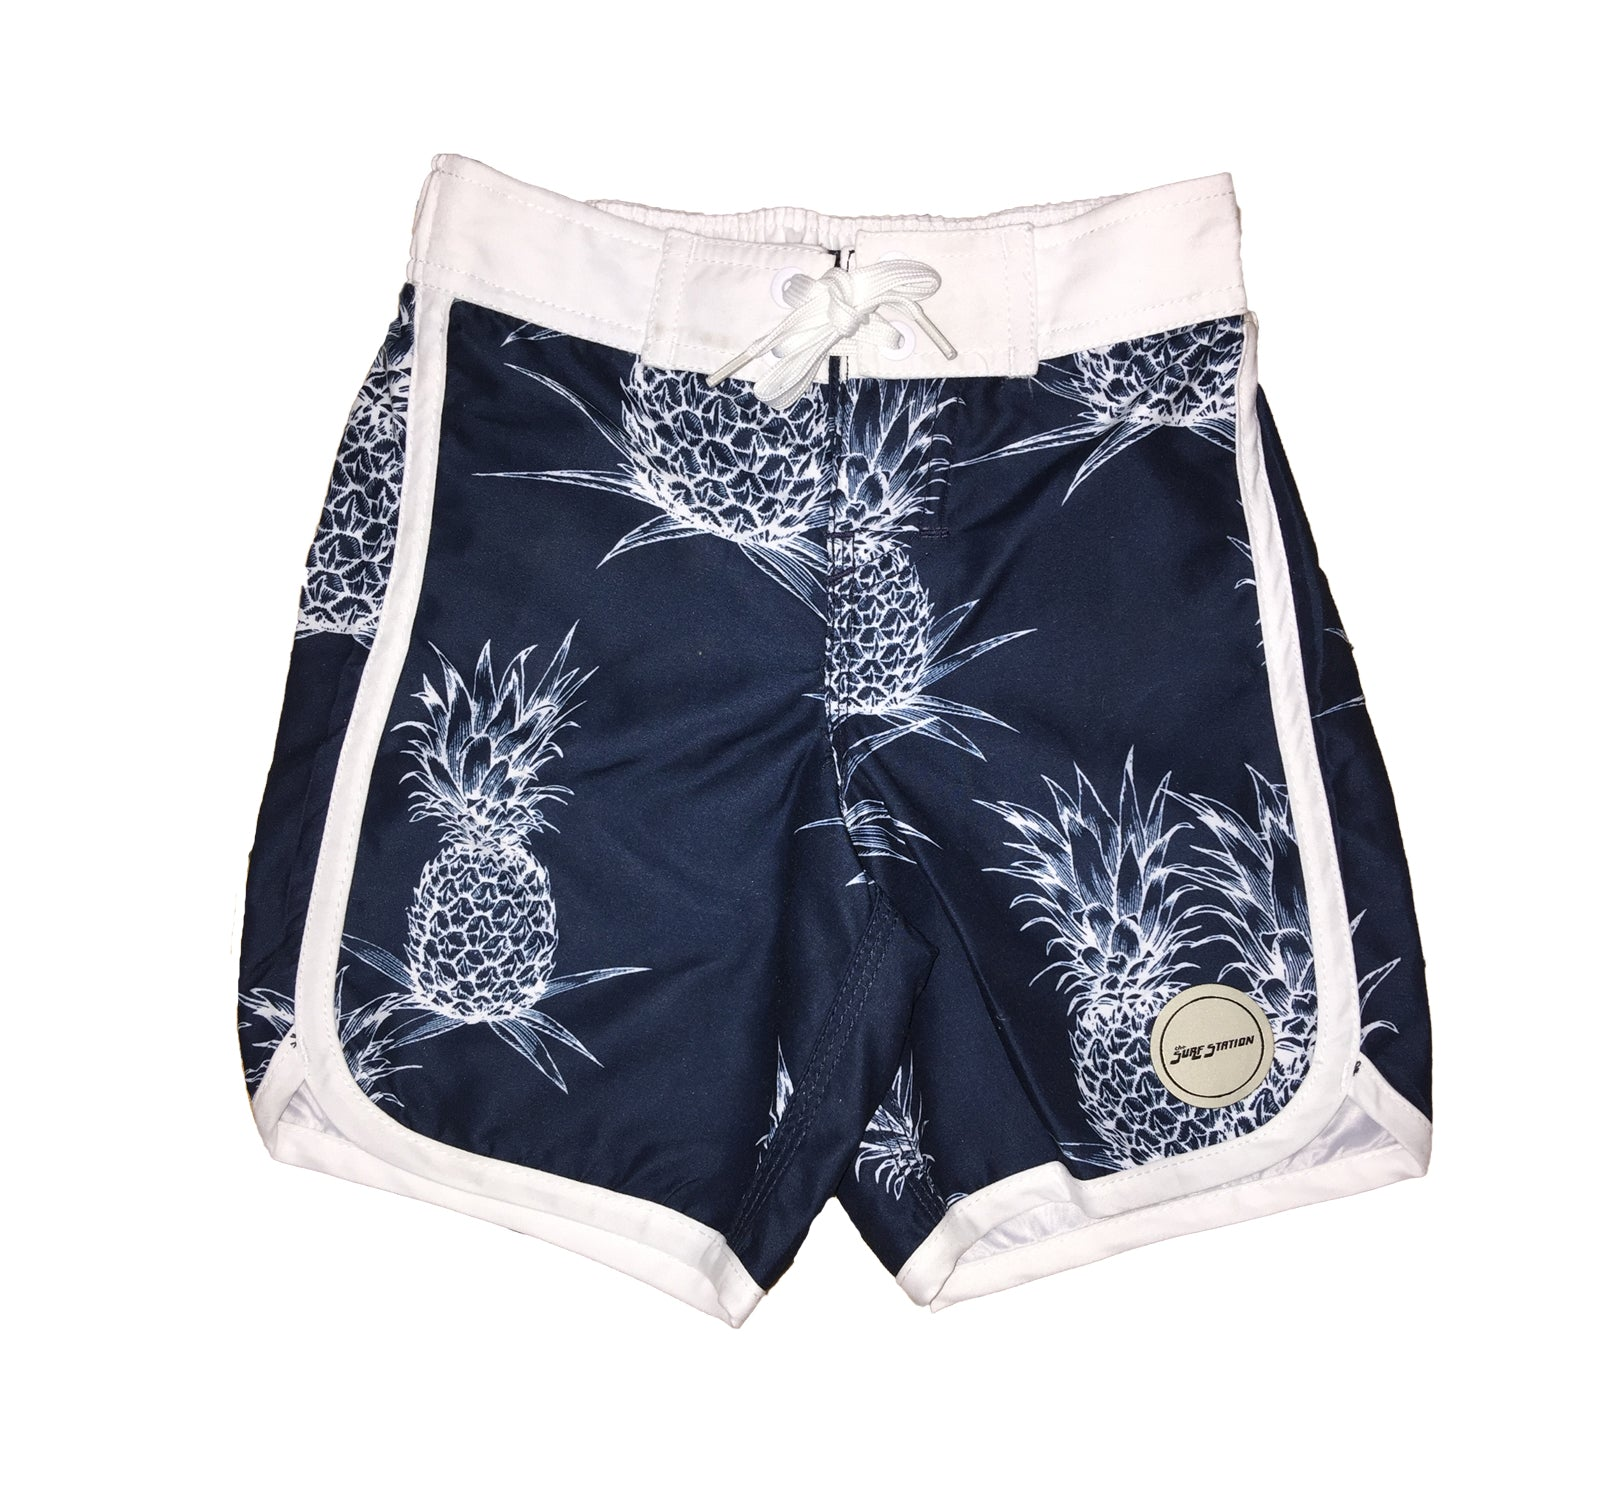 Surf Station Cayman Toddler Boardshorts